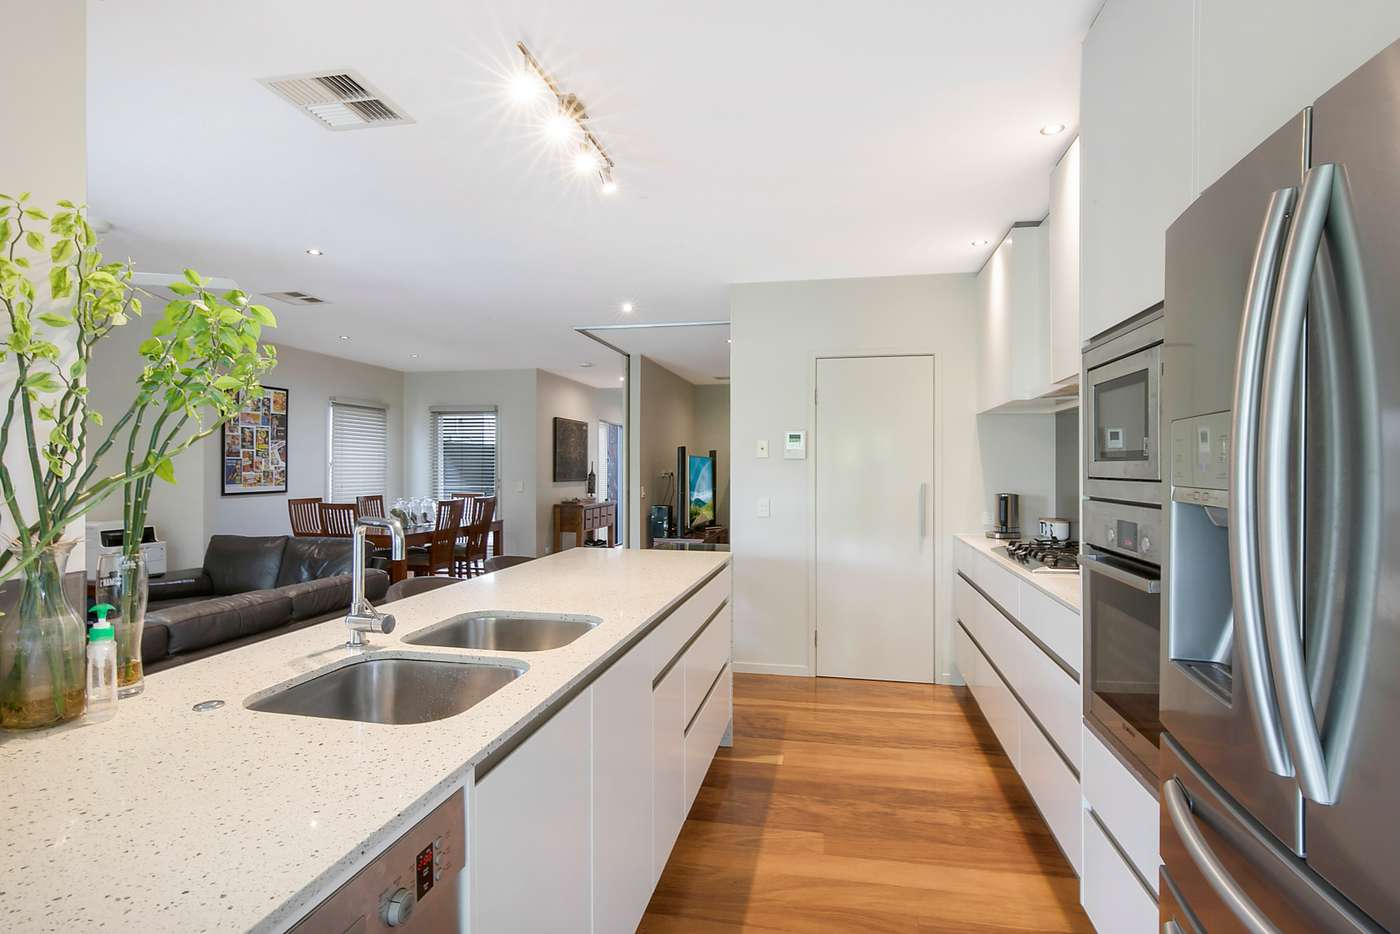 Fifth view of Homely house listing, 31 Gristock Street, Coorparoo QLD 4151